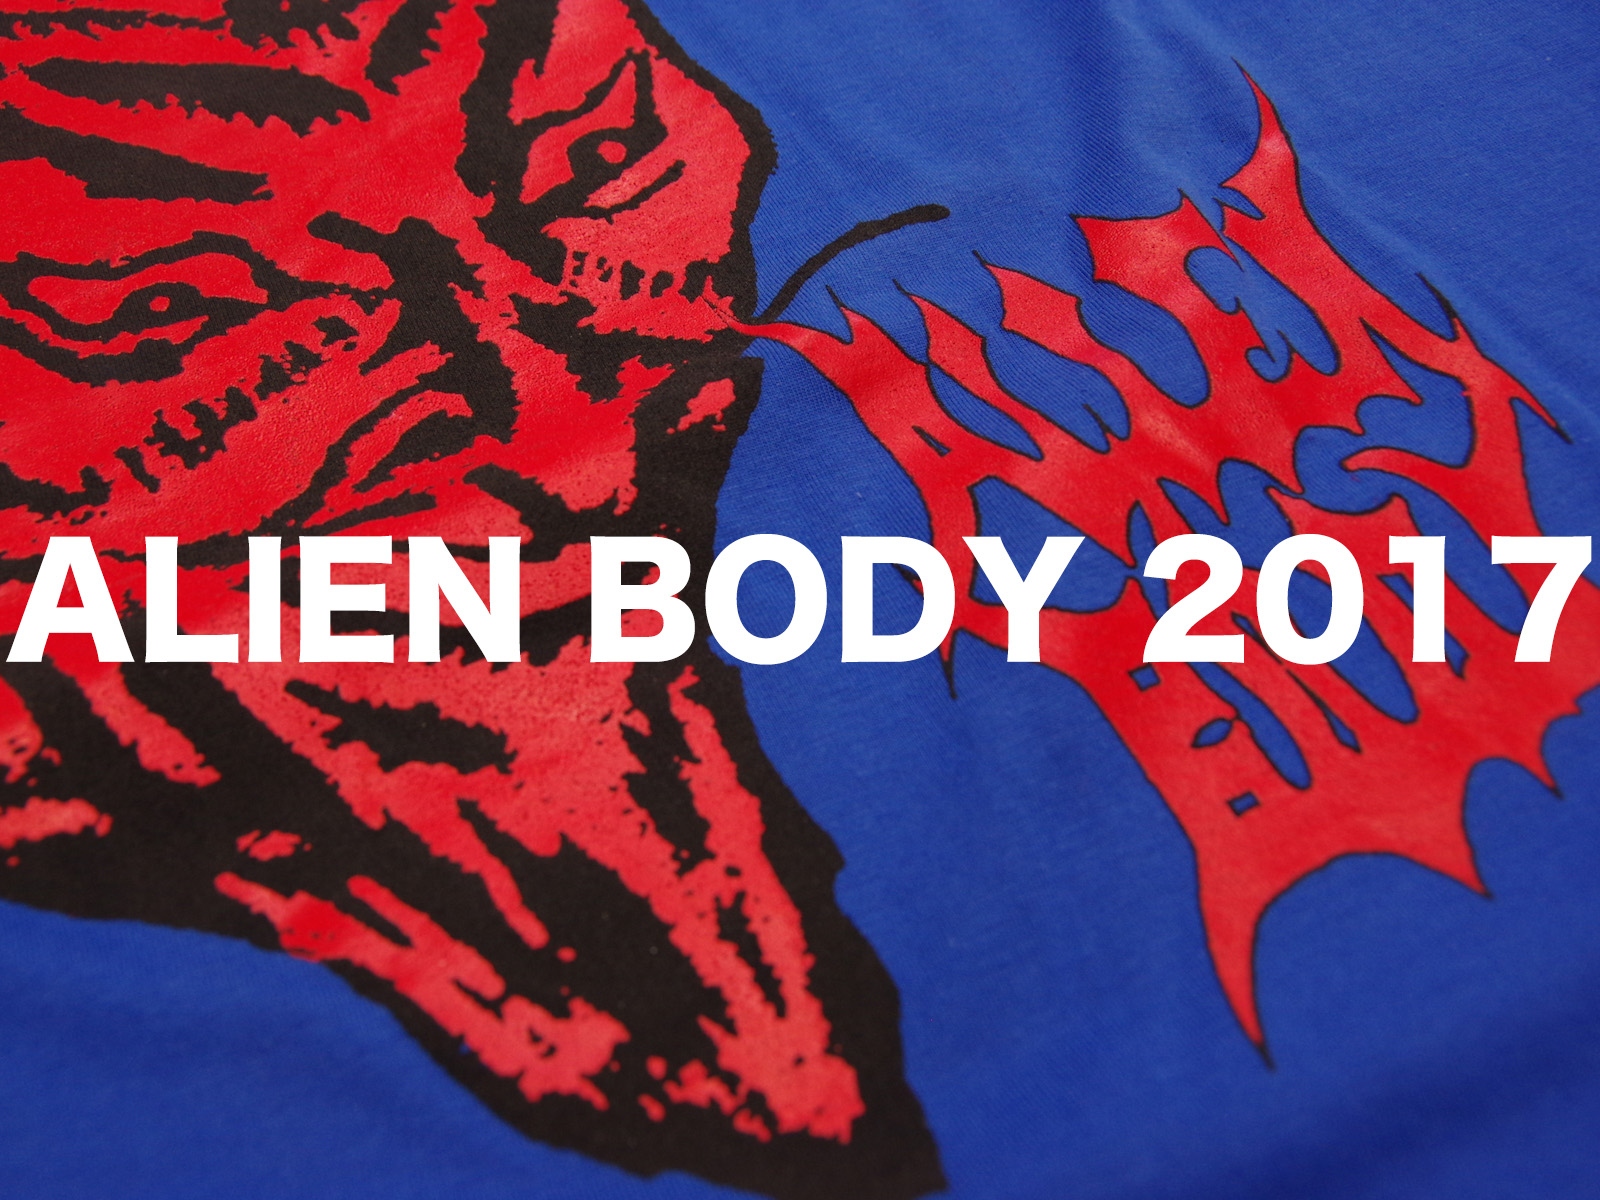 NEW ARRIVAL – ALIEN BODY 2017